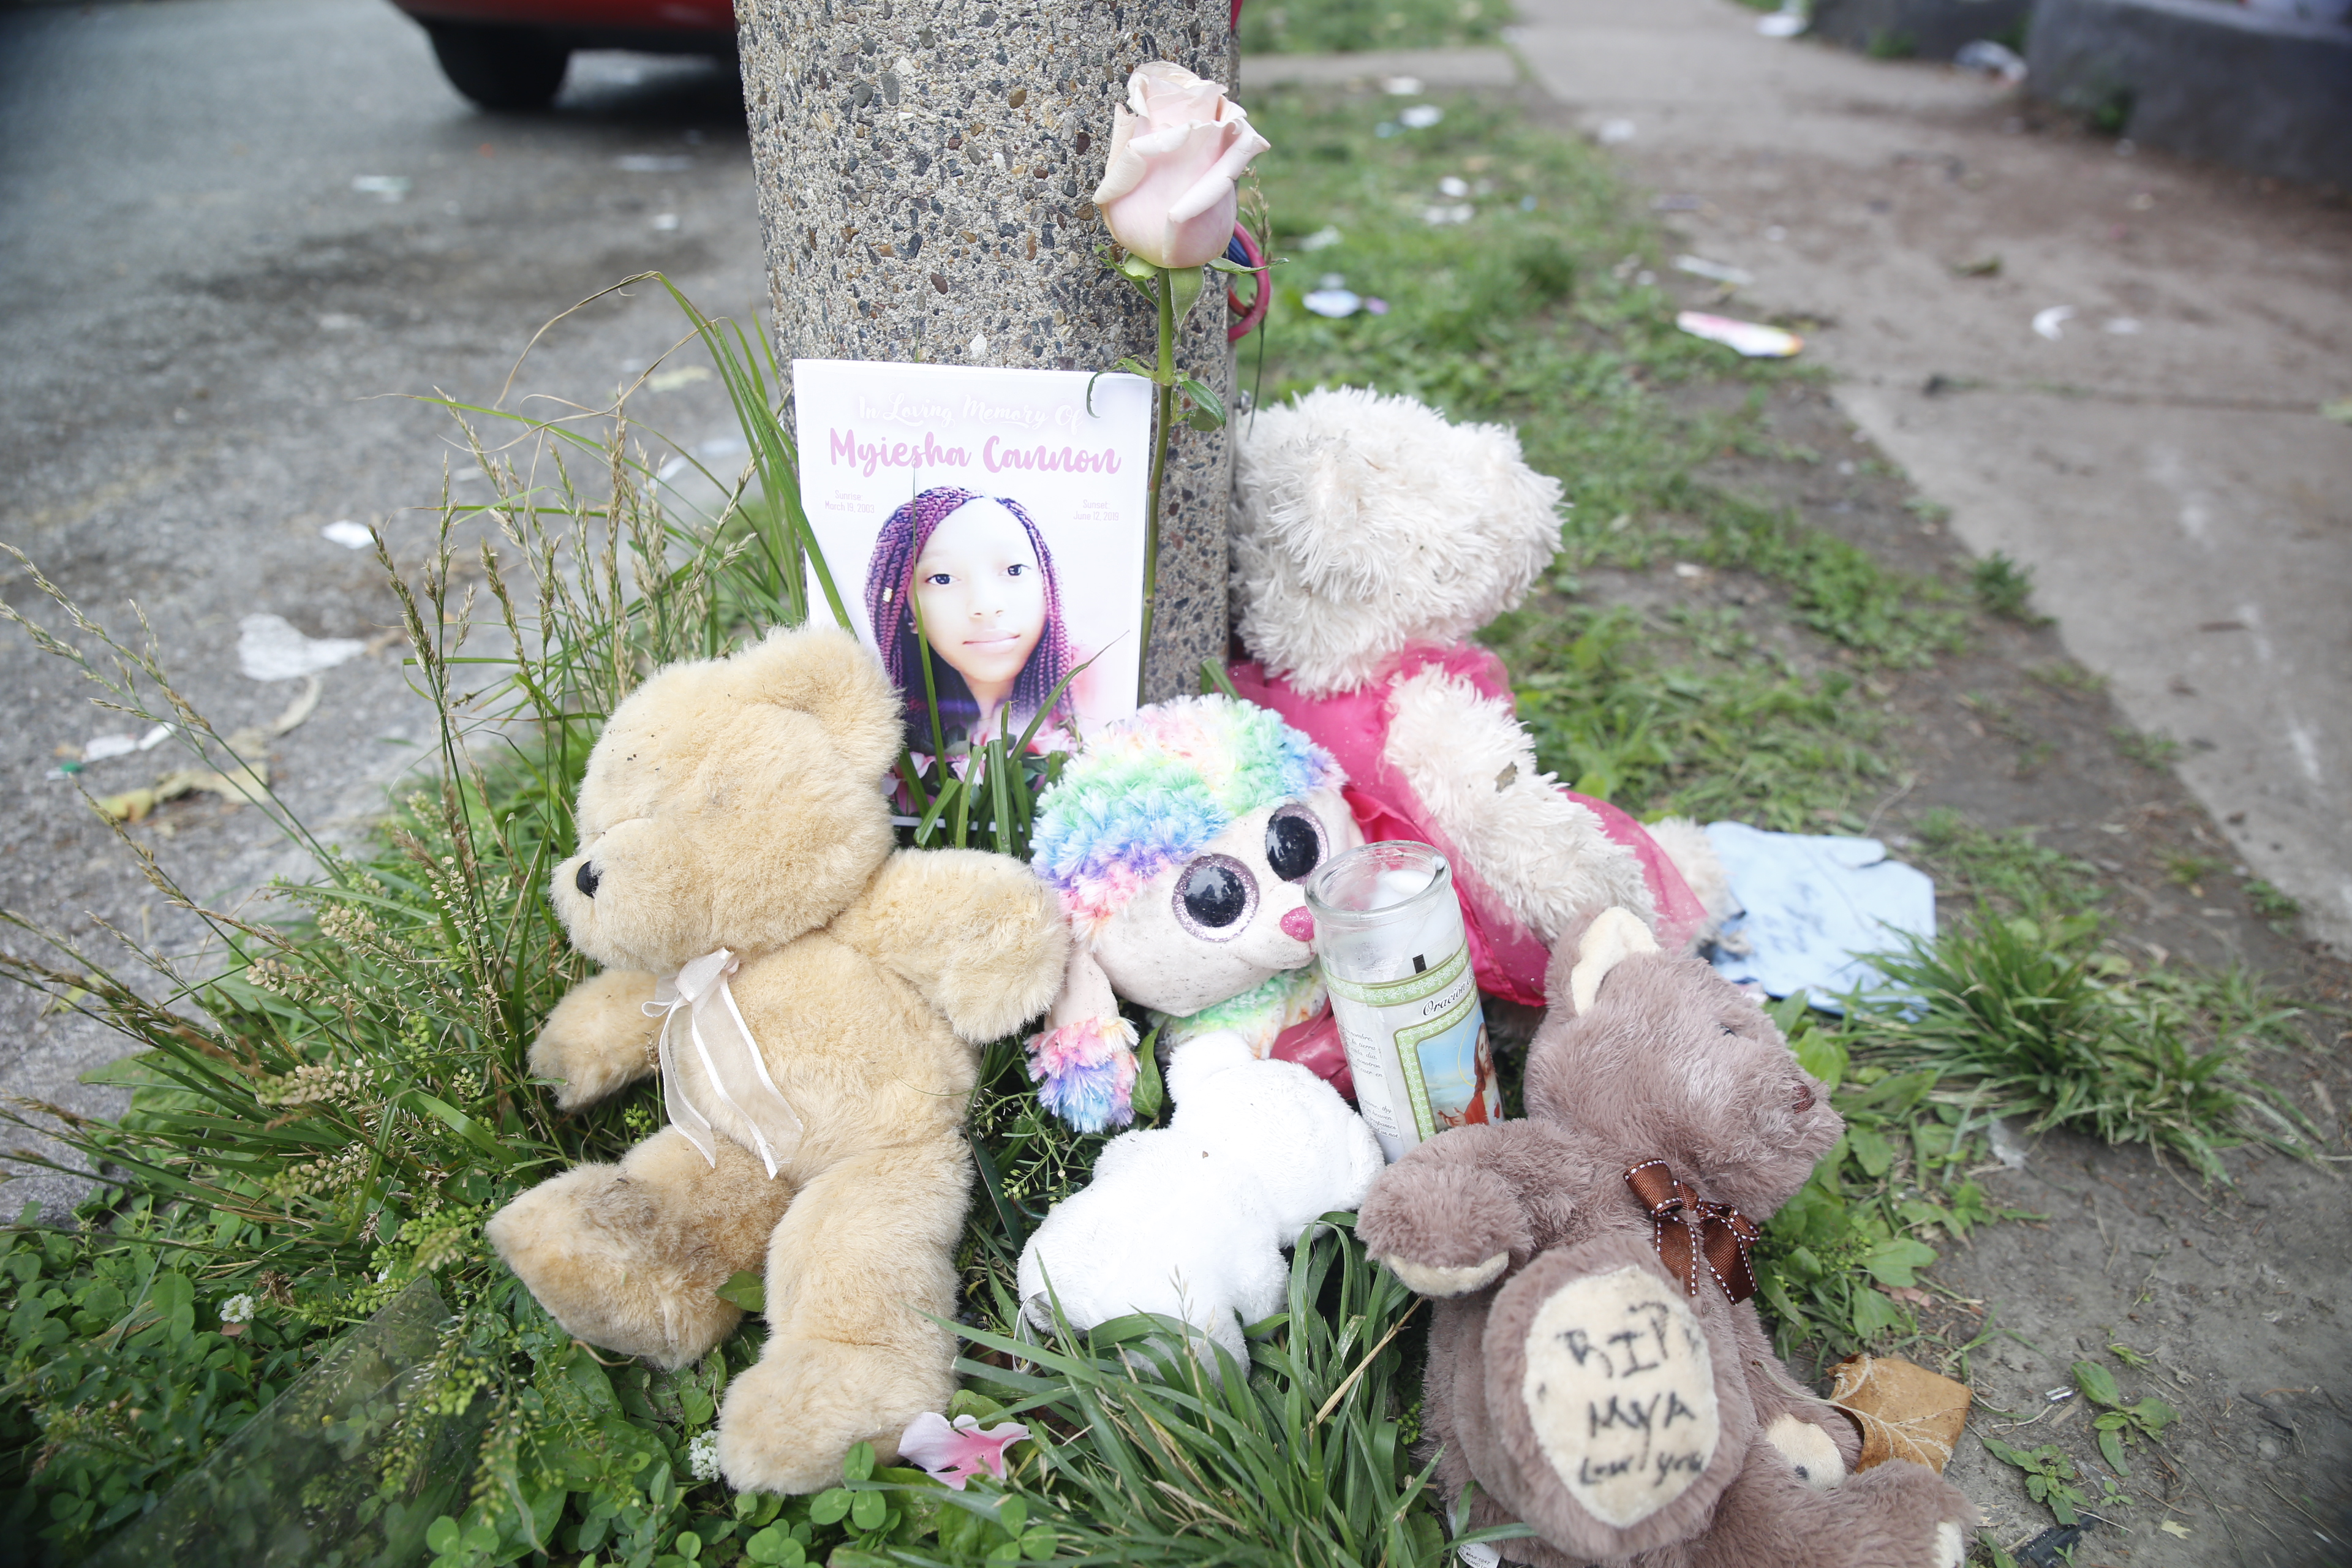 """""""We would be safer if we lived in a war zone!"""" Residents and police react to string of shootings involving kids"""